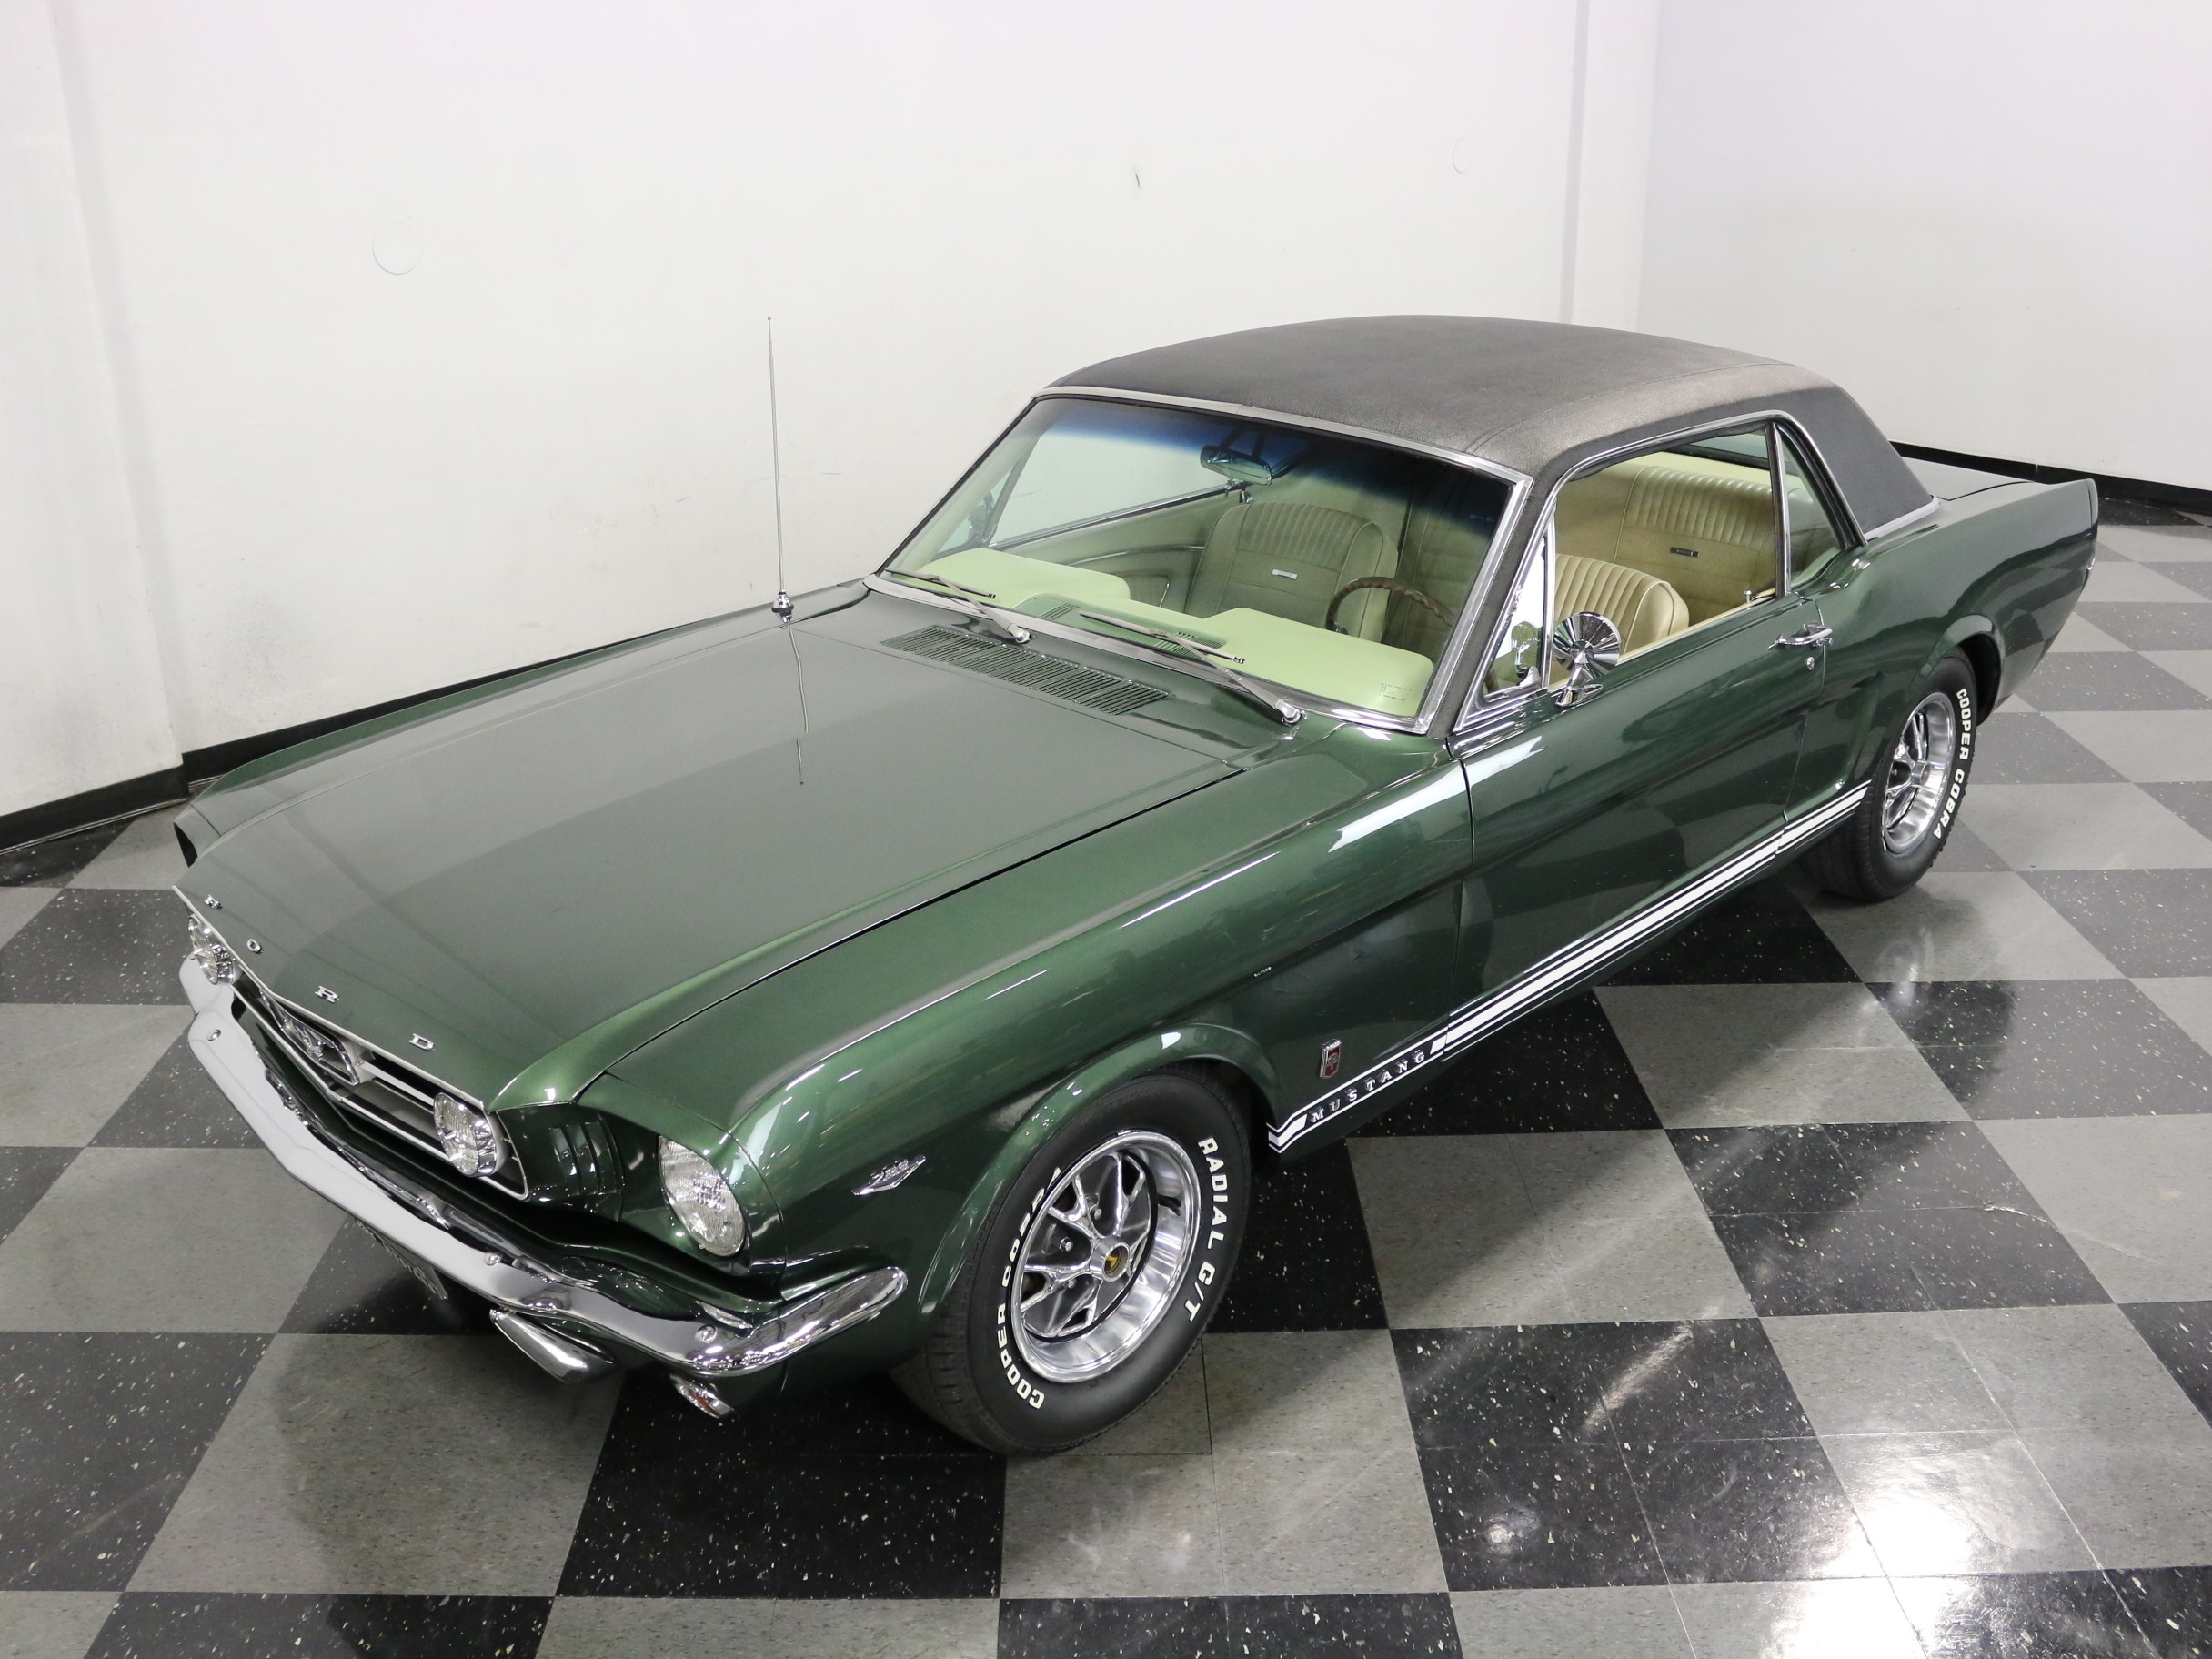 1966 Ford Mustang GT: VERY CLEAN A-CODE GT! CORRECT COLORS, RALLY PAC GAUGES, AUTO, COLD A/C, NICE!